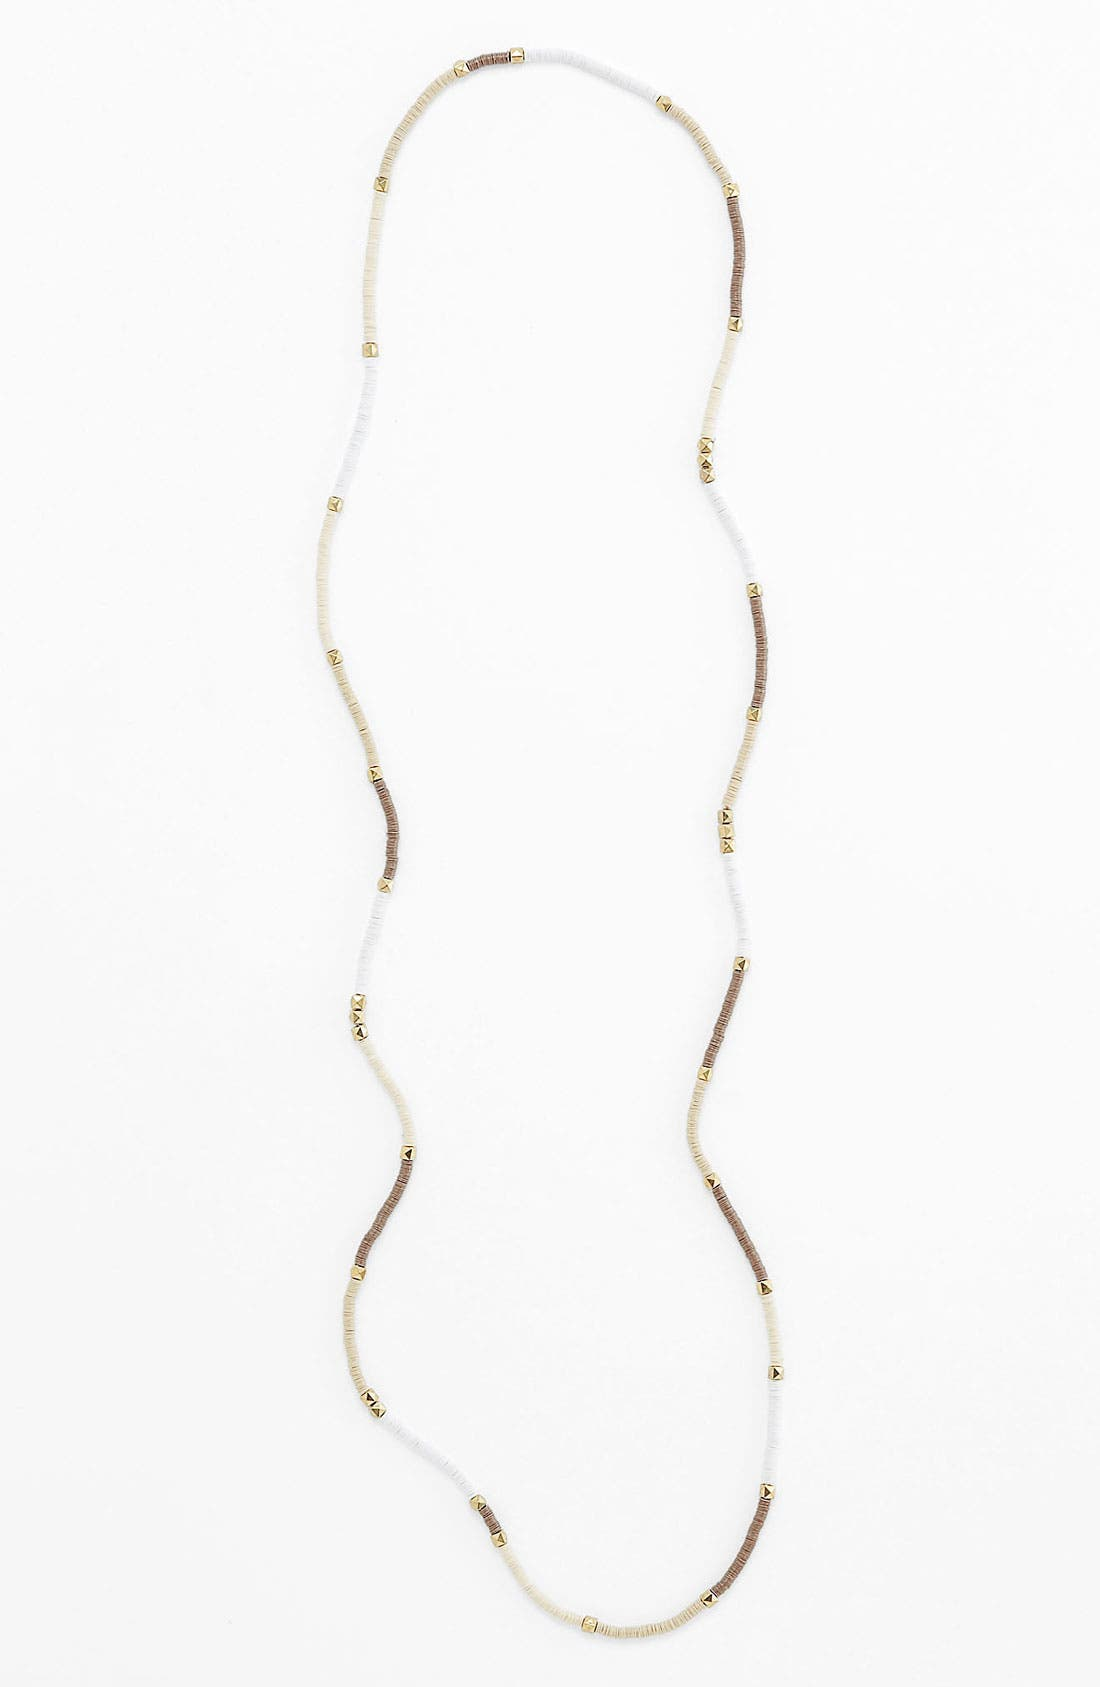 SPRING STREET,                             Design Group Beaded Necklace,                             Main thumbnail 1, color,                             200